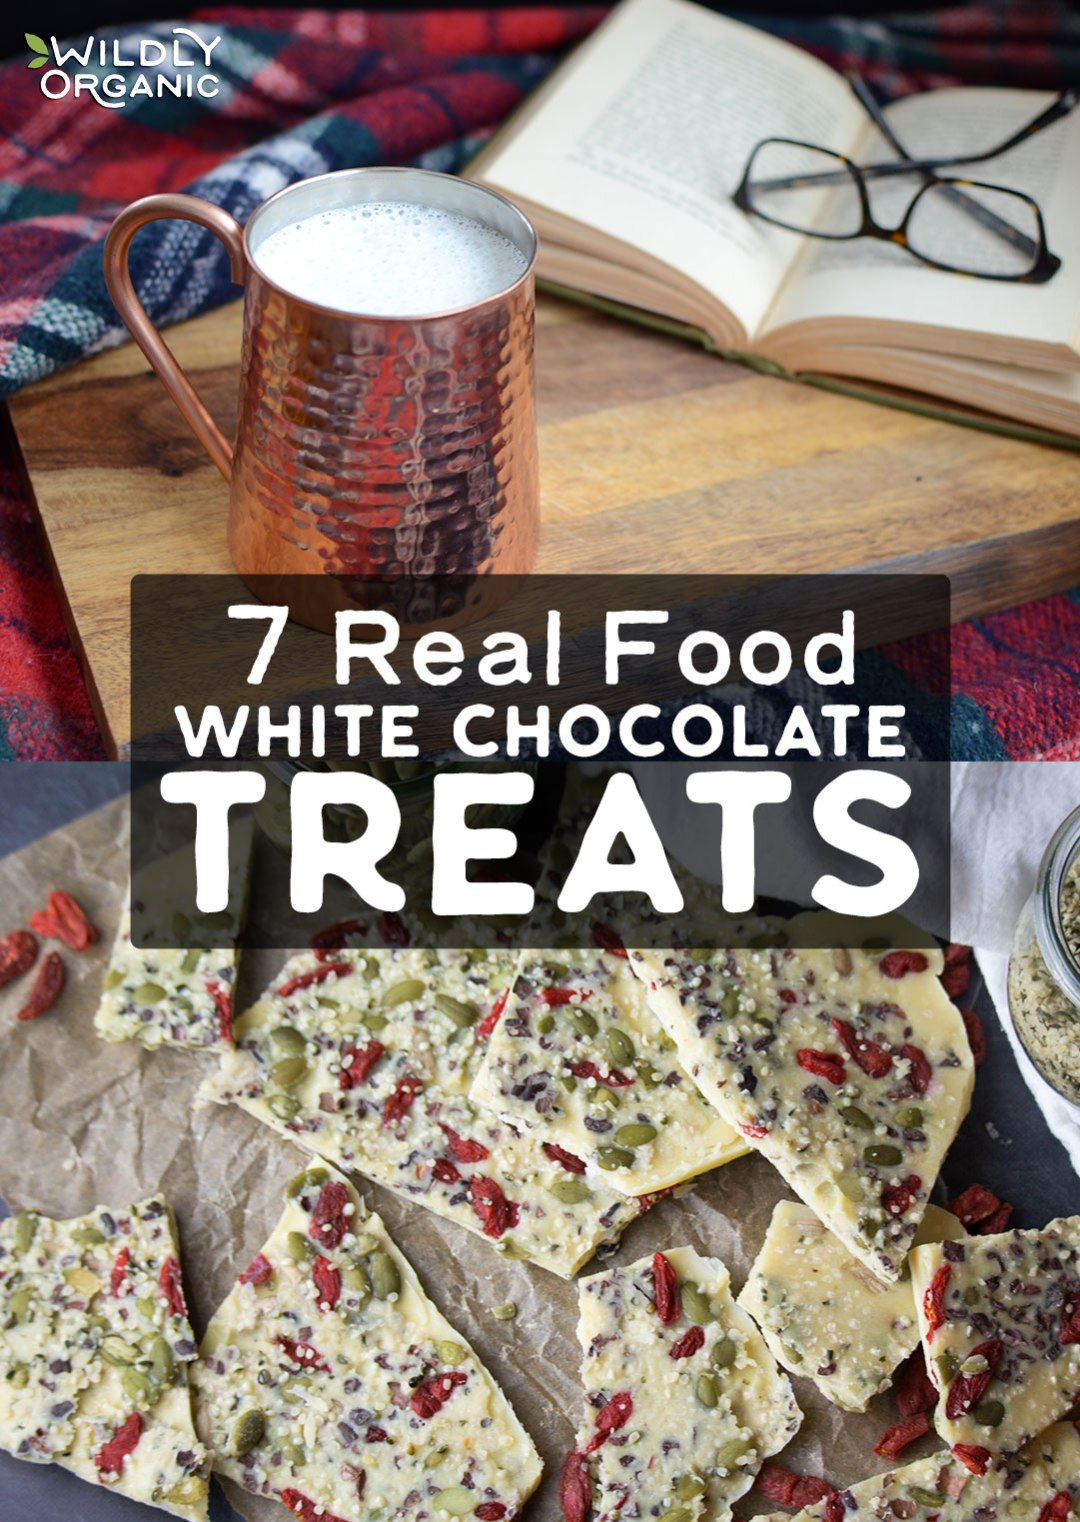 These Real Food White Chocolate Treats prove that white chocolate is no longer just heavily sweetened cubes of melt-able candy found at your local supermarket. Rather than overshadowing its benefits with processed sugar, these nourishing white chocolate recipes allow cacao butter's benefits to shine. So, whether you prefer to drink your white chocolate or serve it for dessert with coffee, you're sure to find a healthier white chocolate treat here!